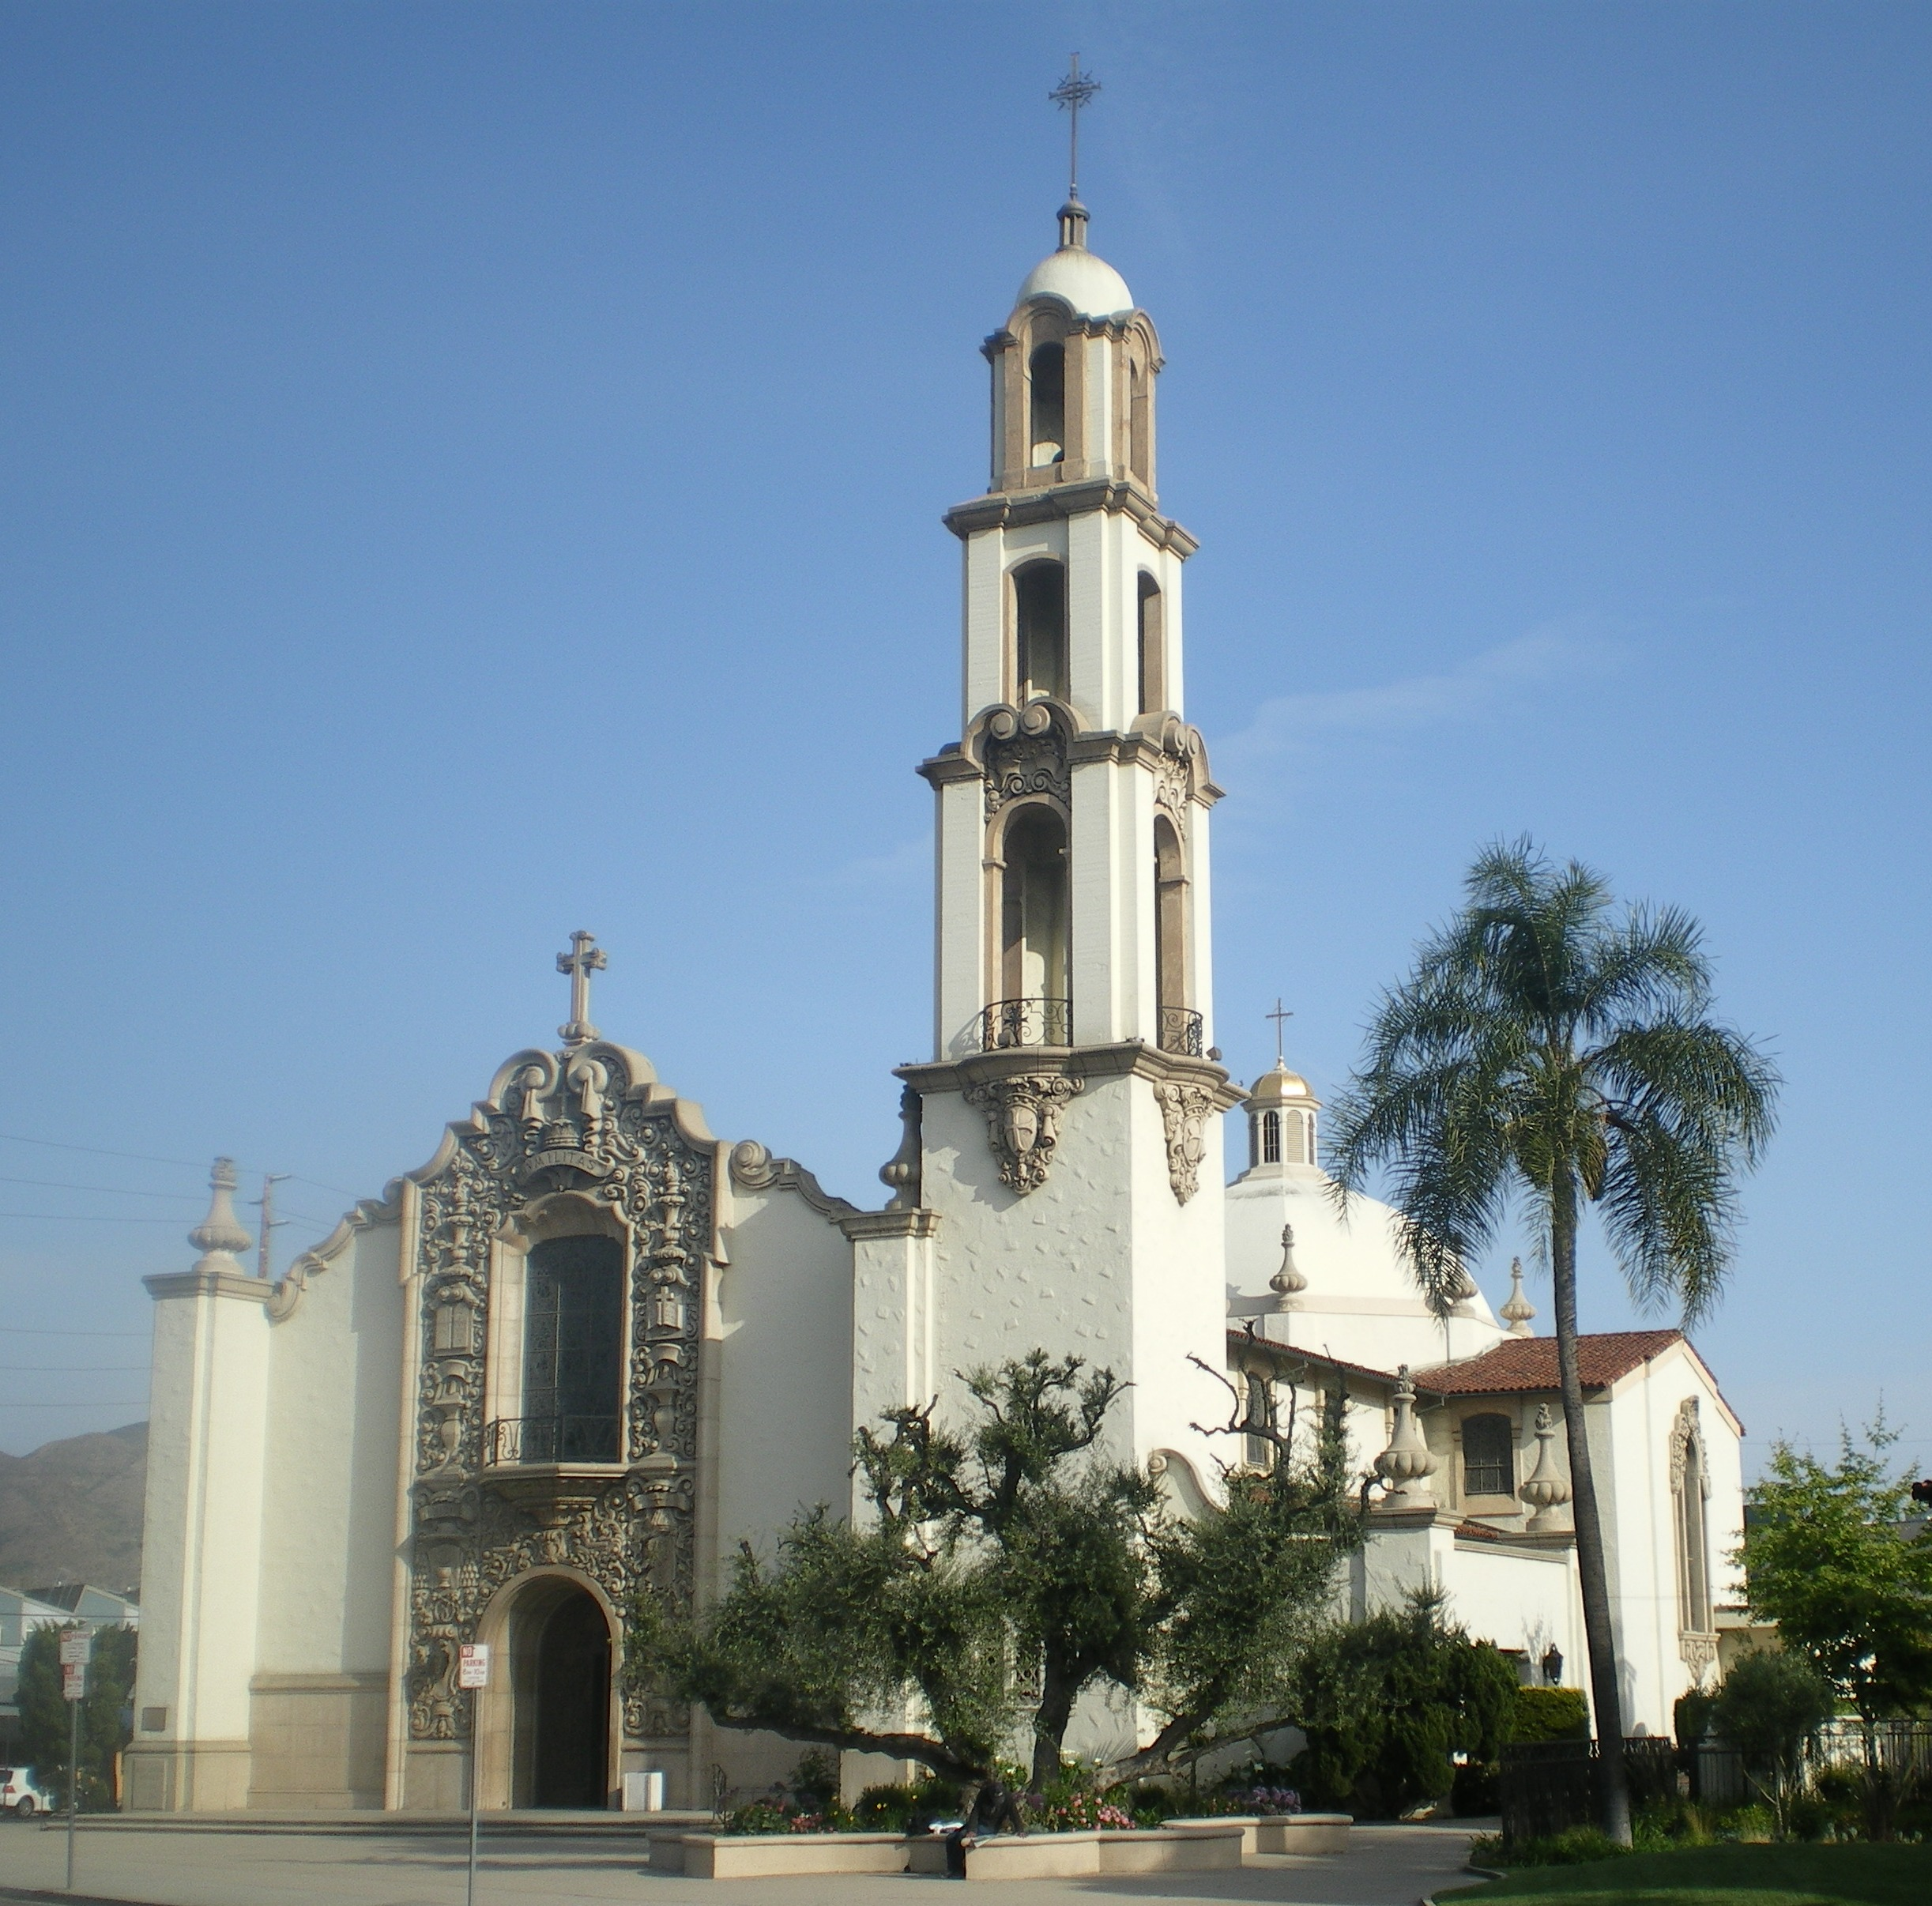 Awesome Church For Sale San Antonio #1: St._Charles_Borromeo_%28North_Hollywood%29.JPG